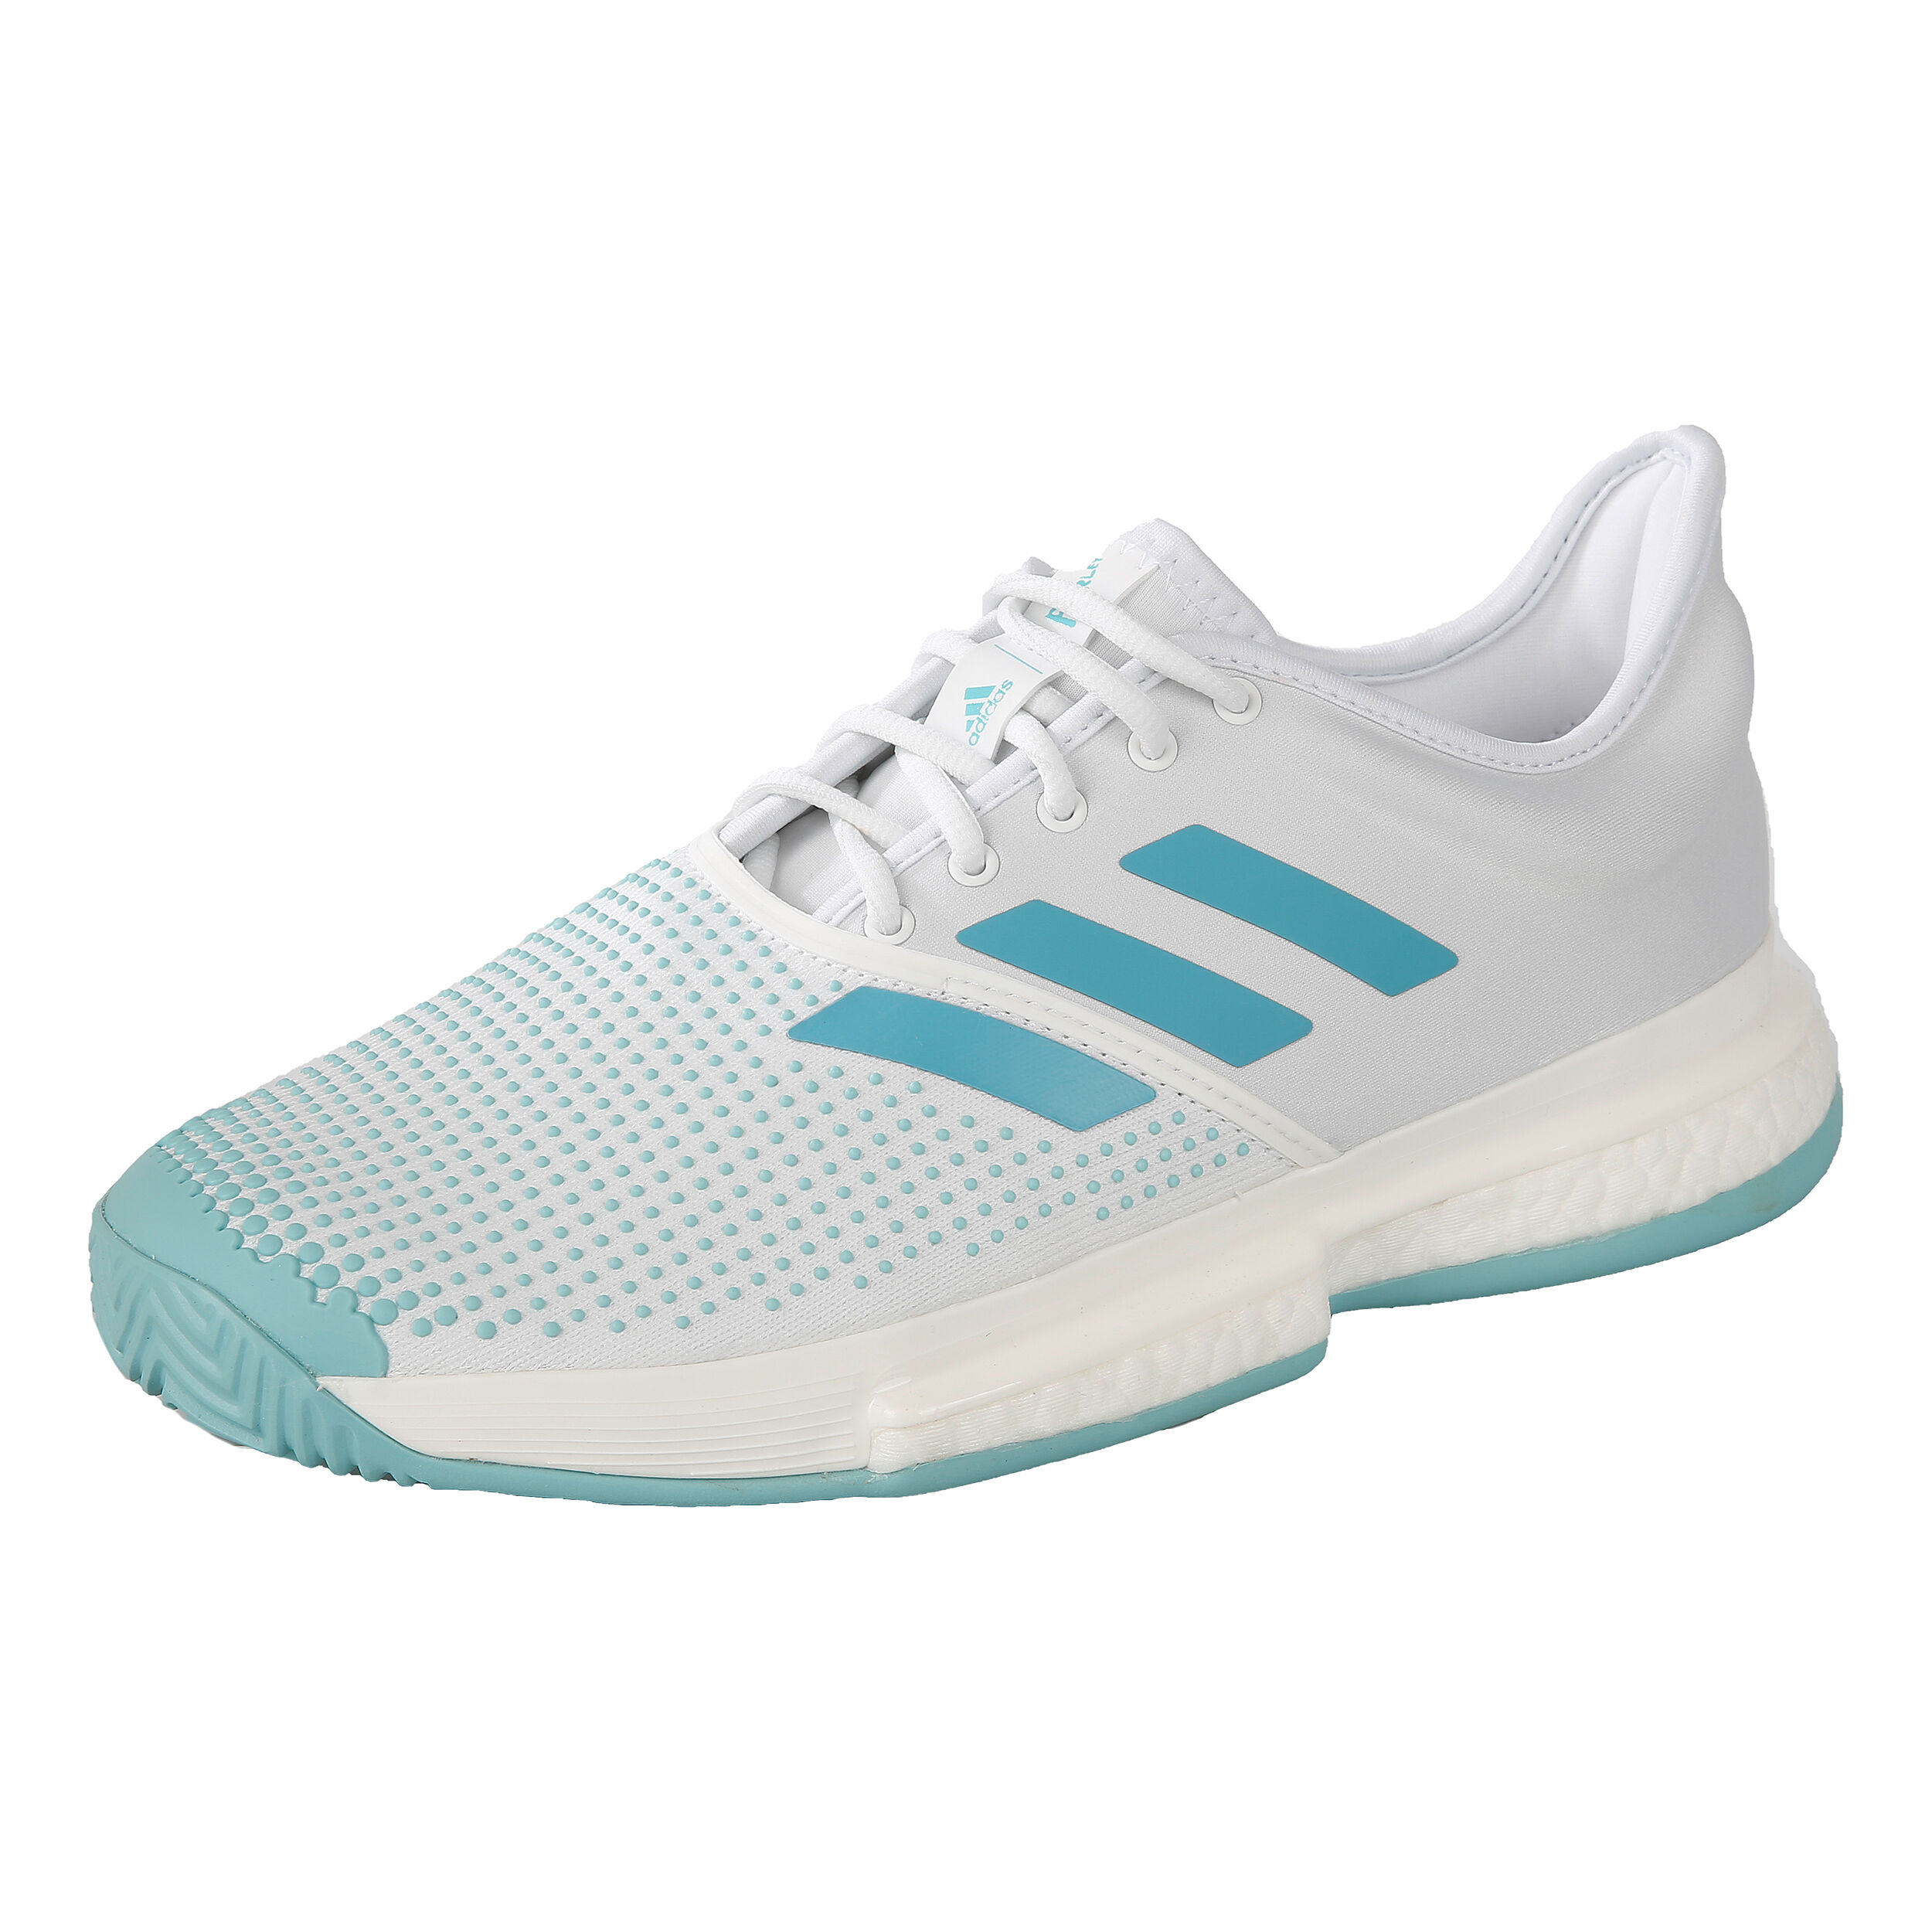 adidas SoleCourt Boost X Parley Chaussures Toutes Surfaces